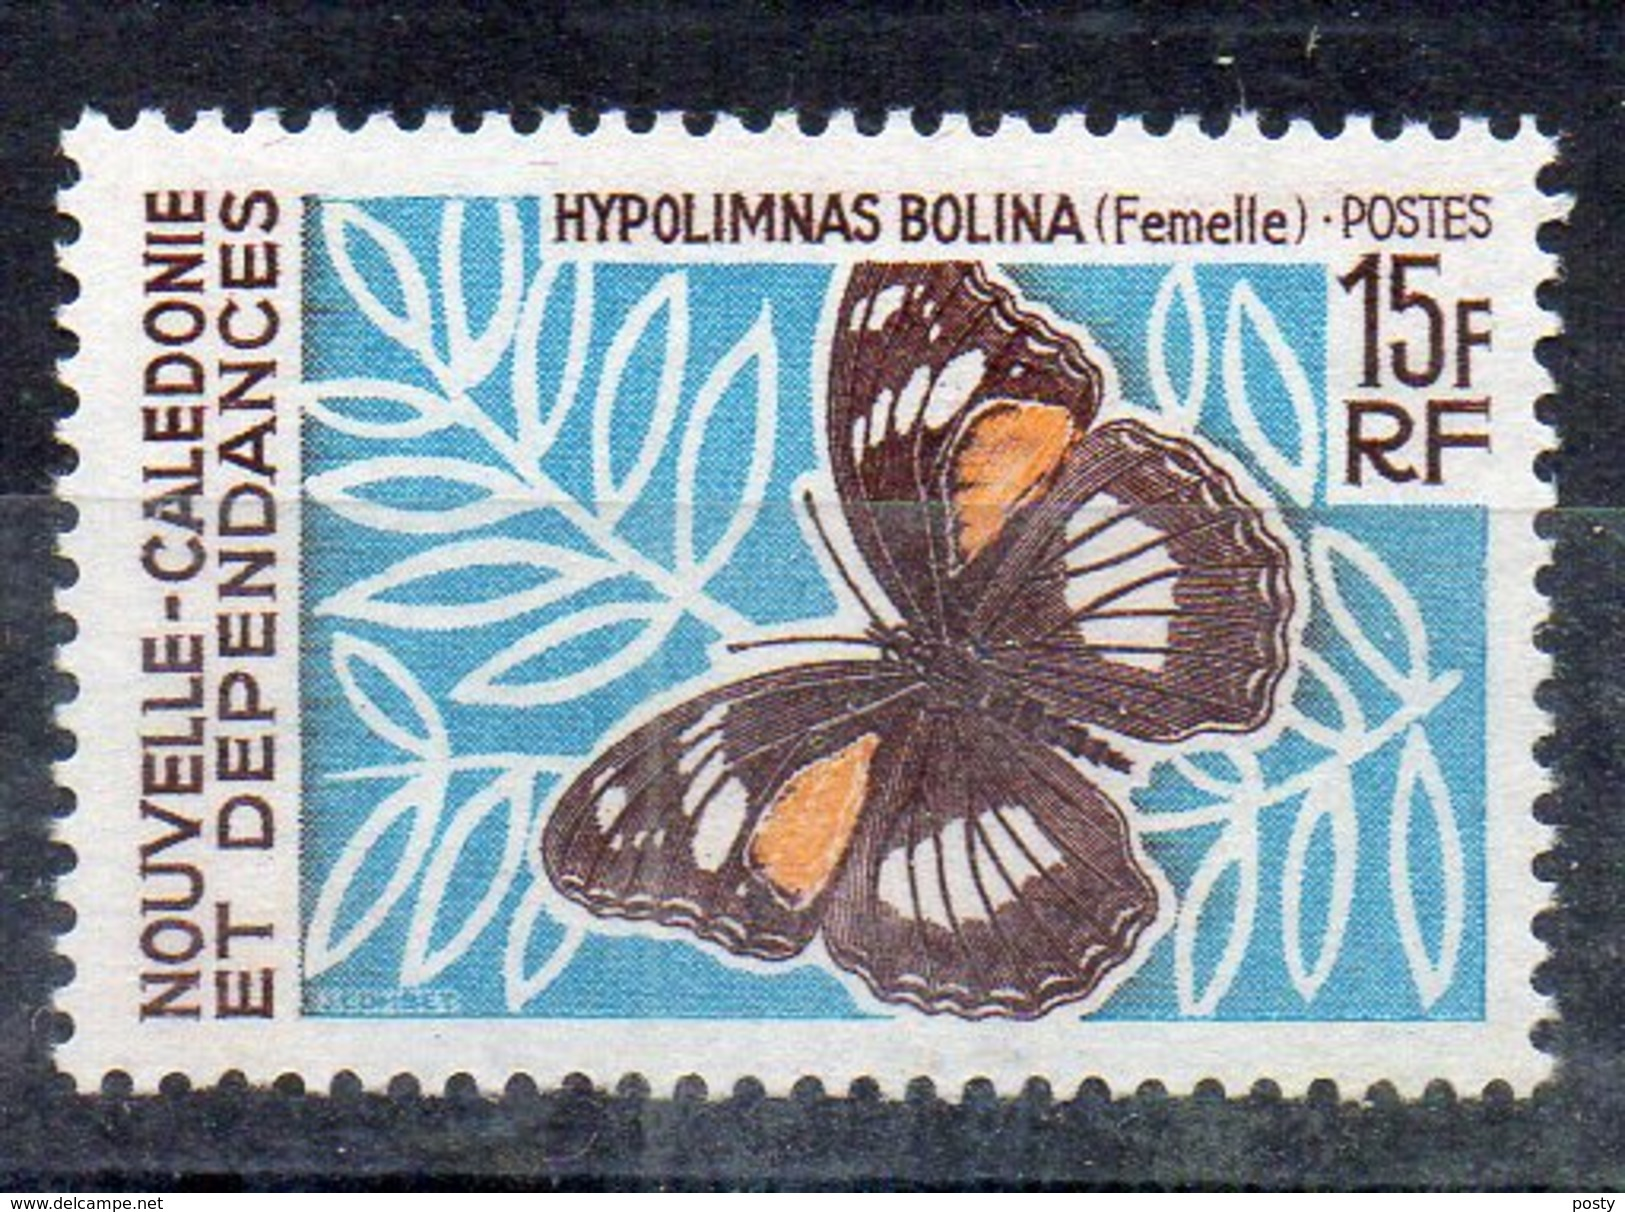 NOUVELLE-CALEDONIE - PAPILLON - BUTTERFLY - HYPOLIMNAS BOLINA - 15 Fr - 1967 - - New Caledonia